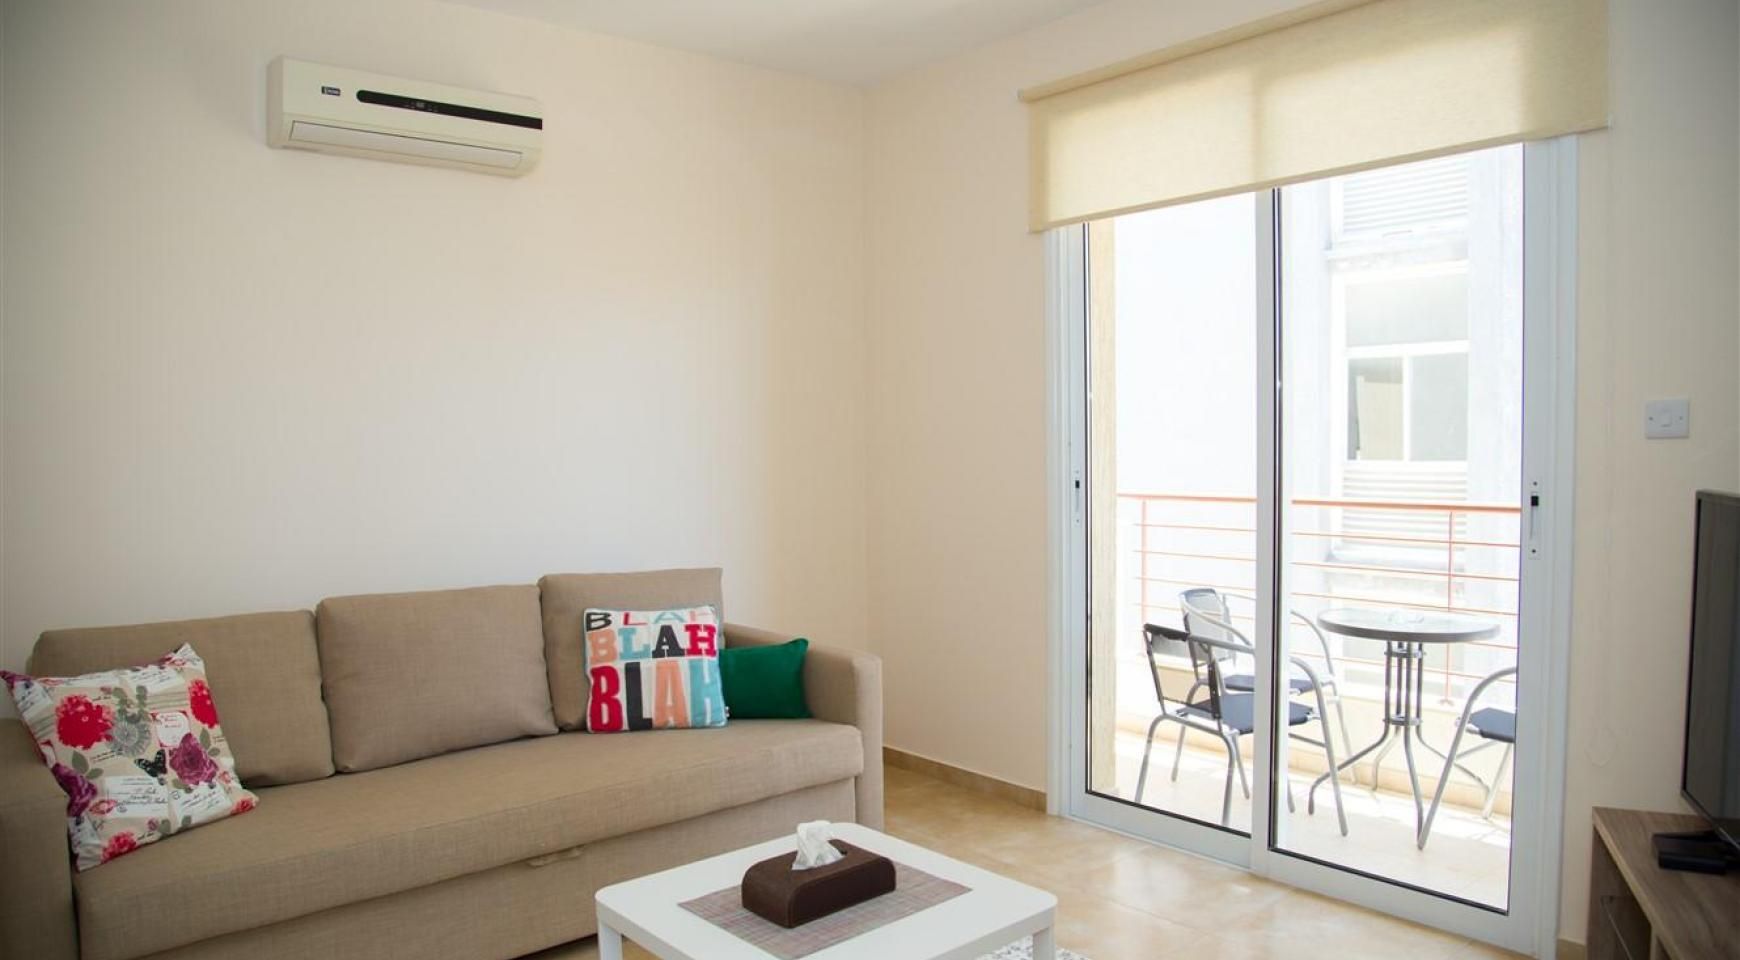 Luxury One Bedroom Apartment Frida 103 in the Tourist Area - 1